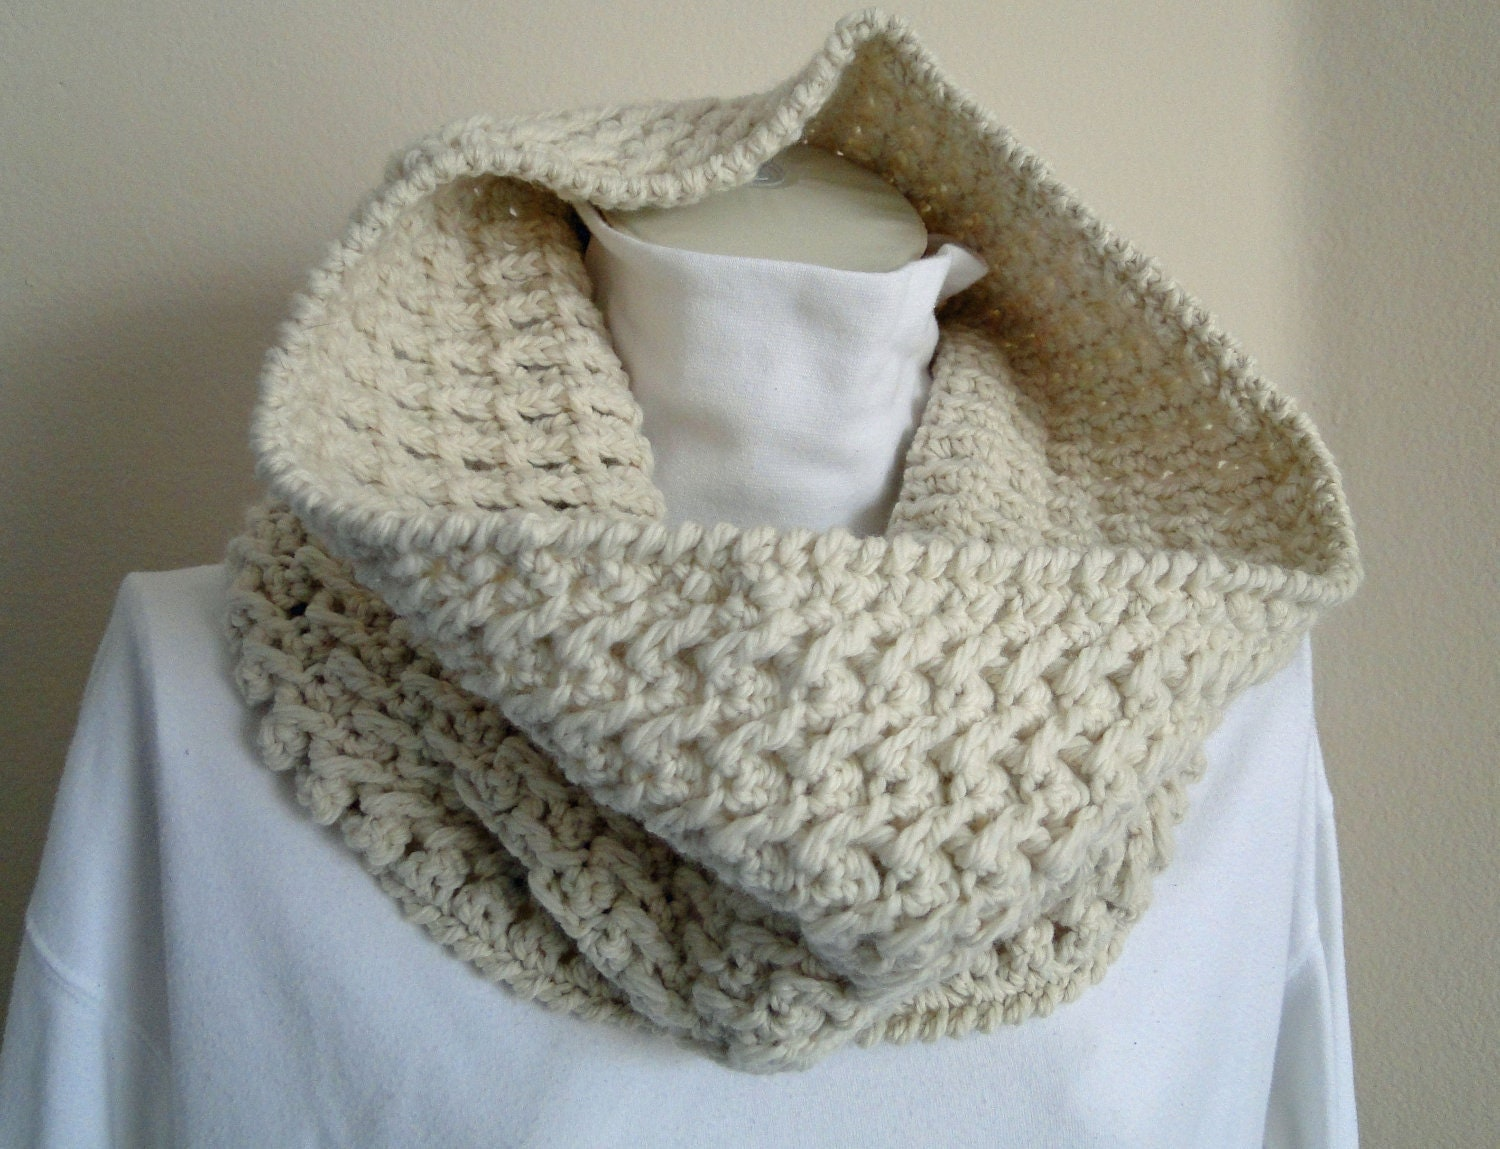 Crochet Neck Warmer Cowl Scarf Zig Zag Design by karensstitchnitch Cowl Neck Scarves Crochet